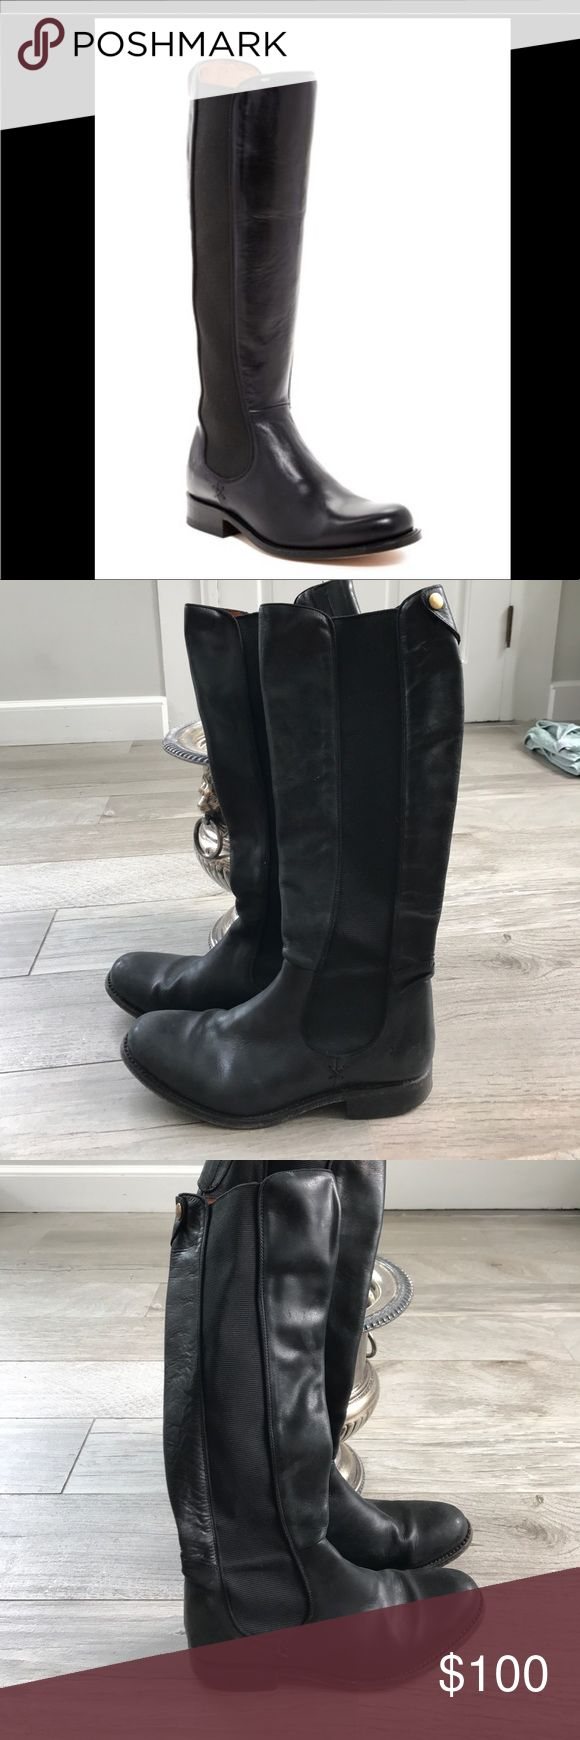 Frye Chelsea riding boots Used black Frye riding boots with elastic sides. Slip-on with a snap behind the knee for design. Worn a fair amount, but still in good condition. Frye Shoes Heeled Boots